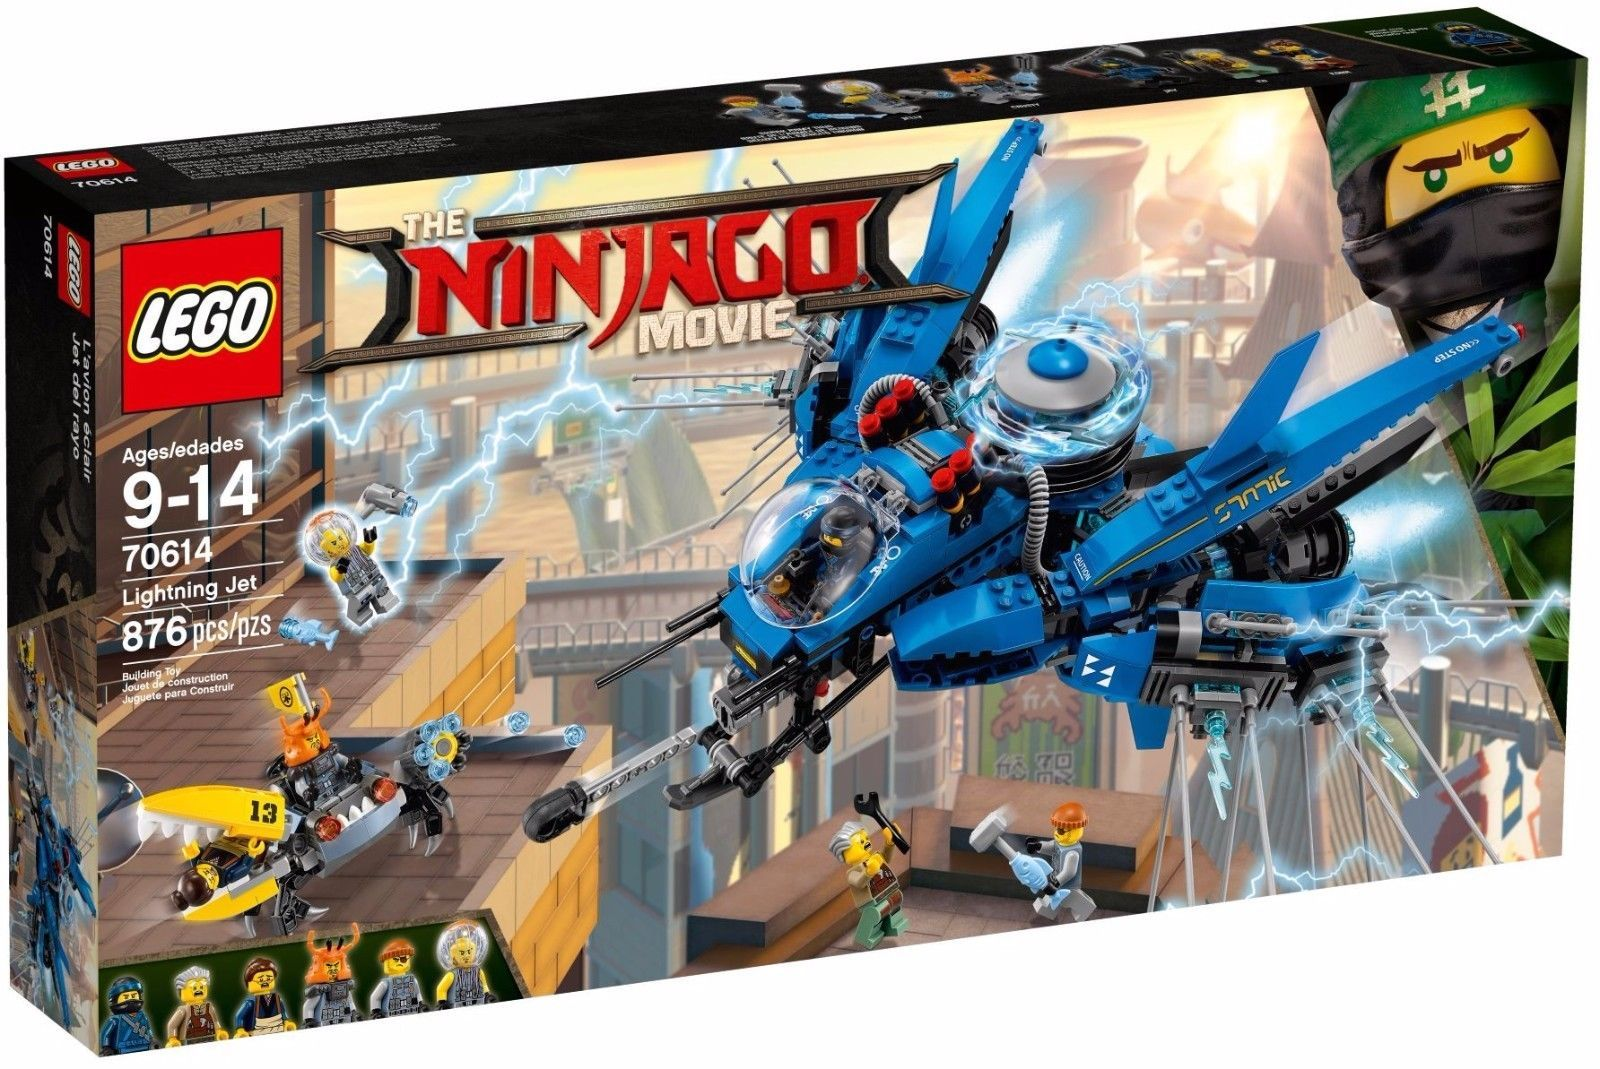 Lego Ninjago Movie Lightning Jet 70614 New Sealed Buying Toys 70596 Samurai X Cave Chaos